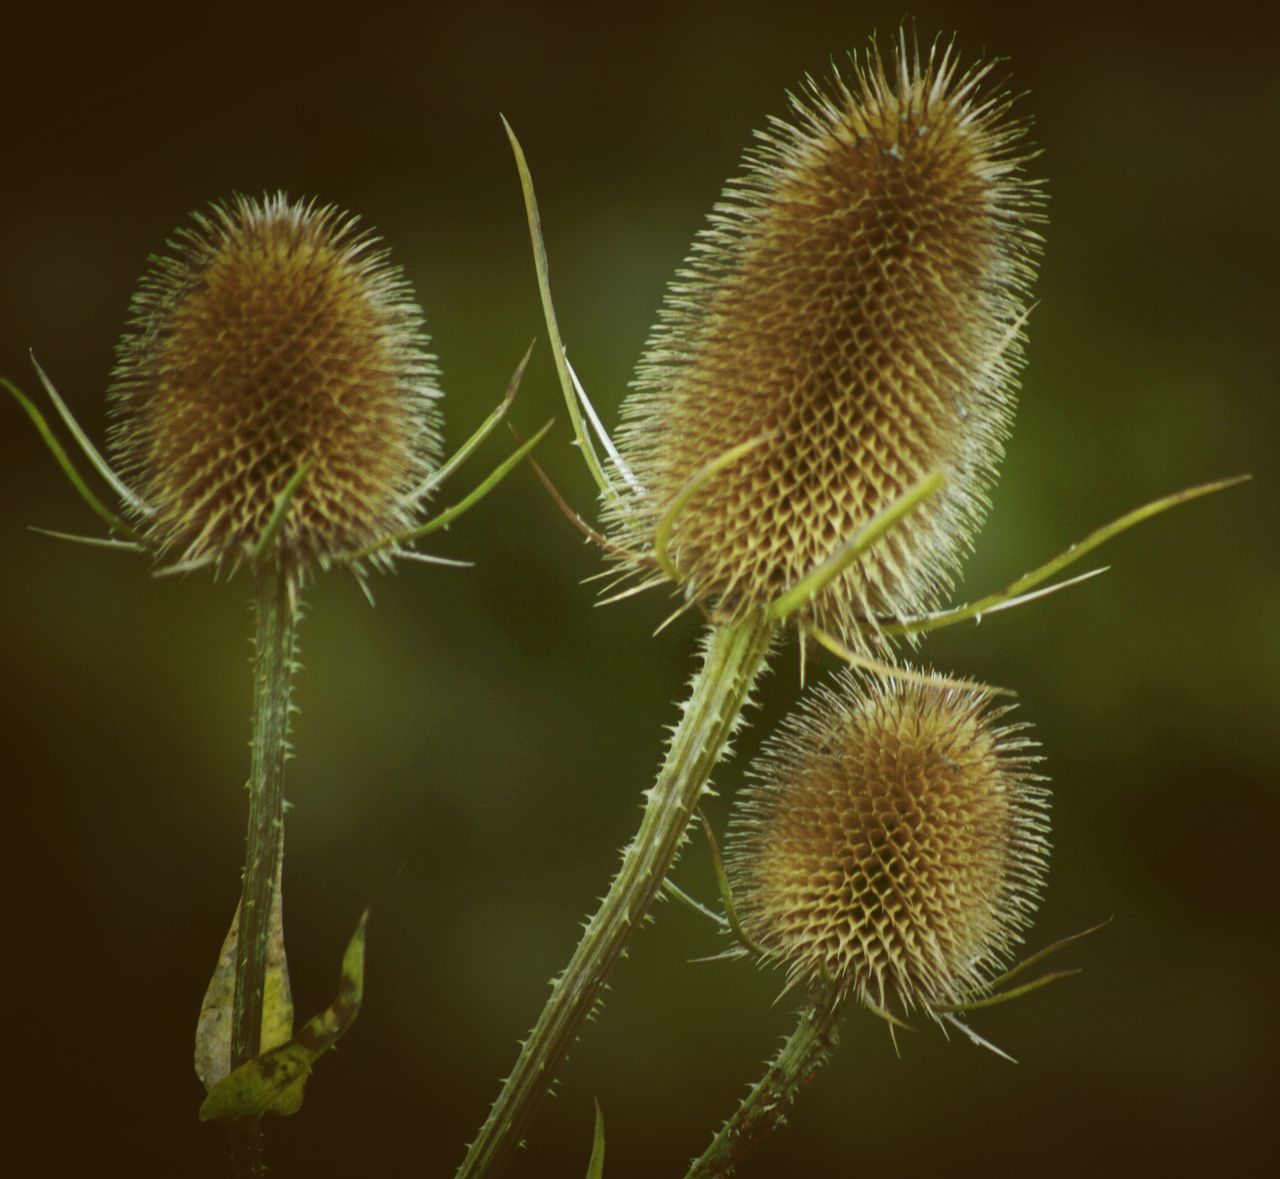 growth, plant, nature, thorn, spiked, beauty in nature, no people, close-up, green color, focus on foreground, freshness, day, outdoors, cactus, flower, thistle